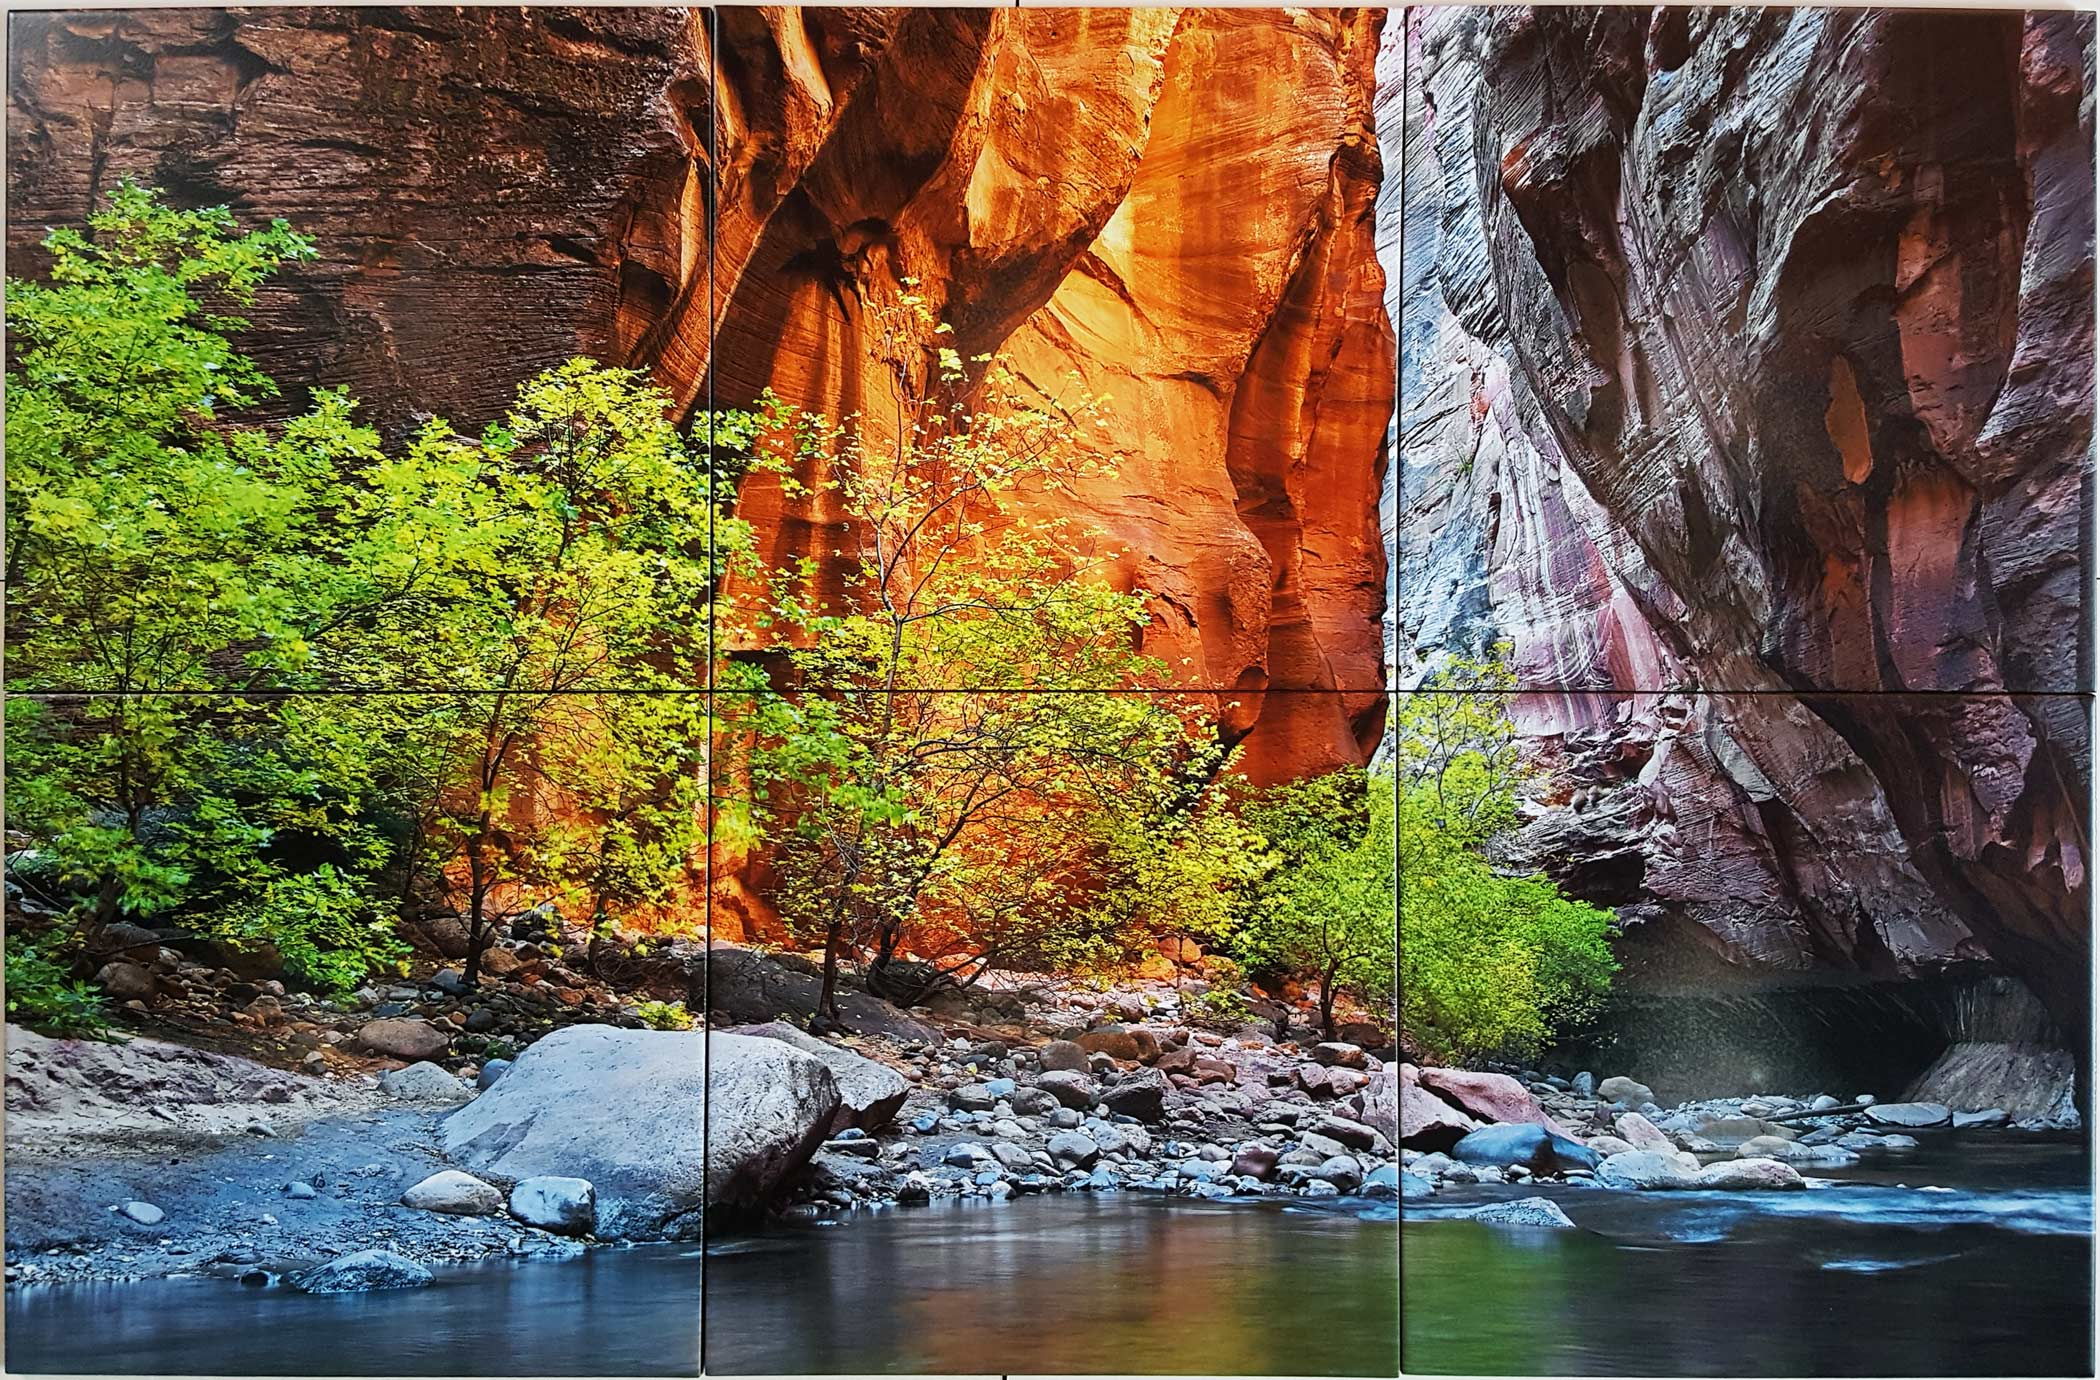 Chiseled Rocks & Water Photo Tile Mural, CS Lanz